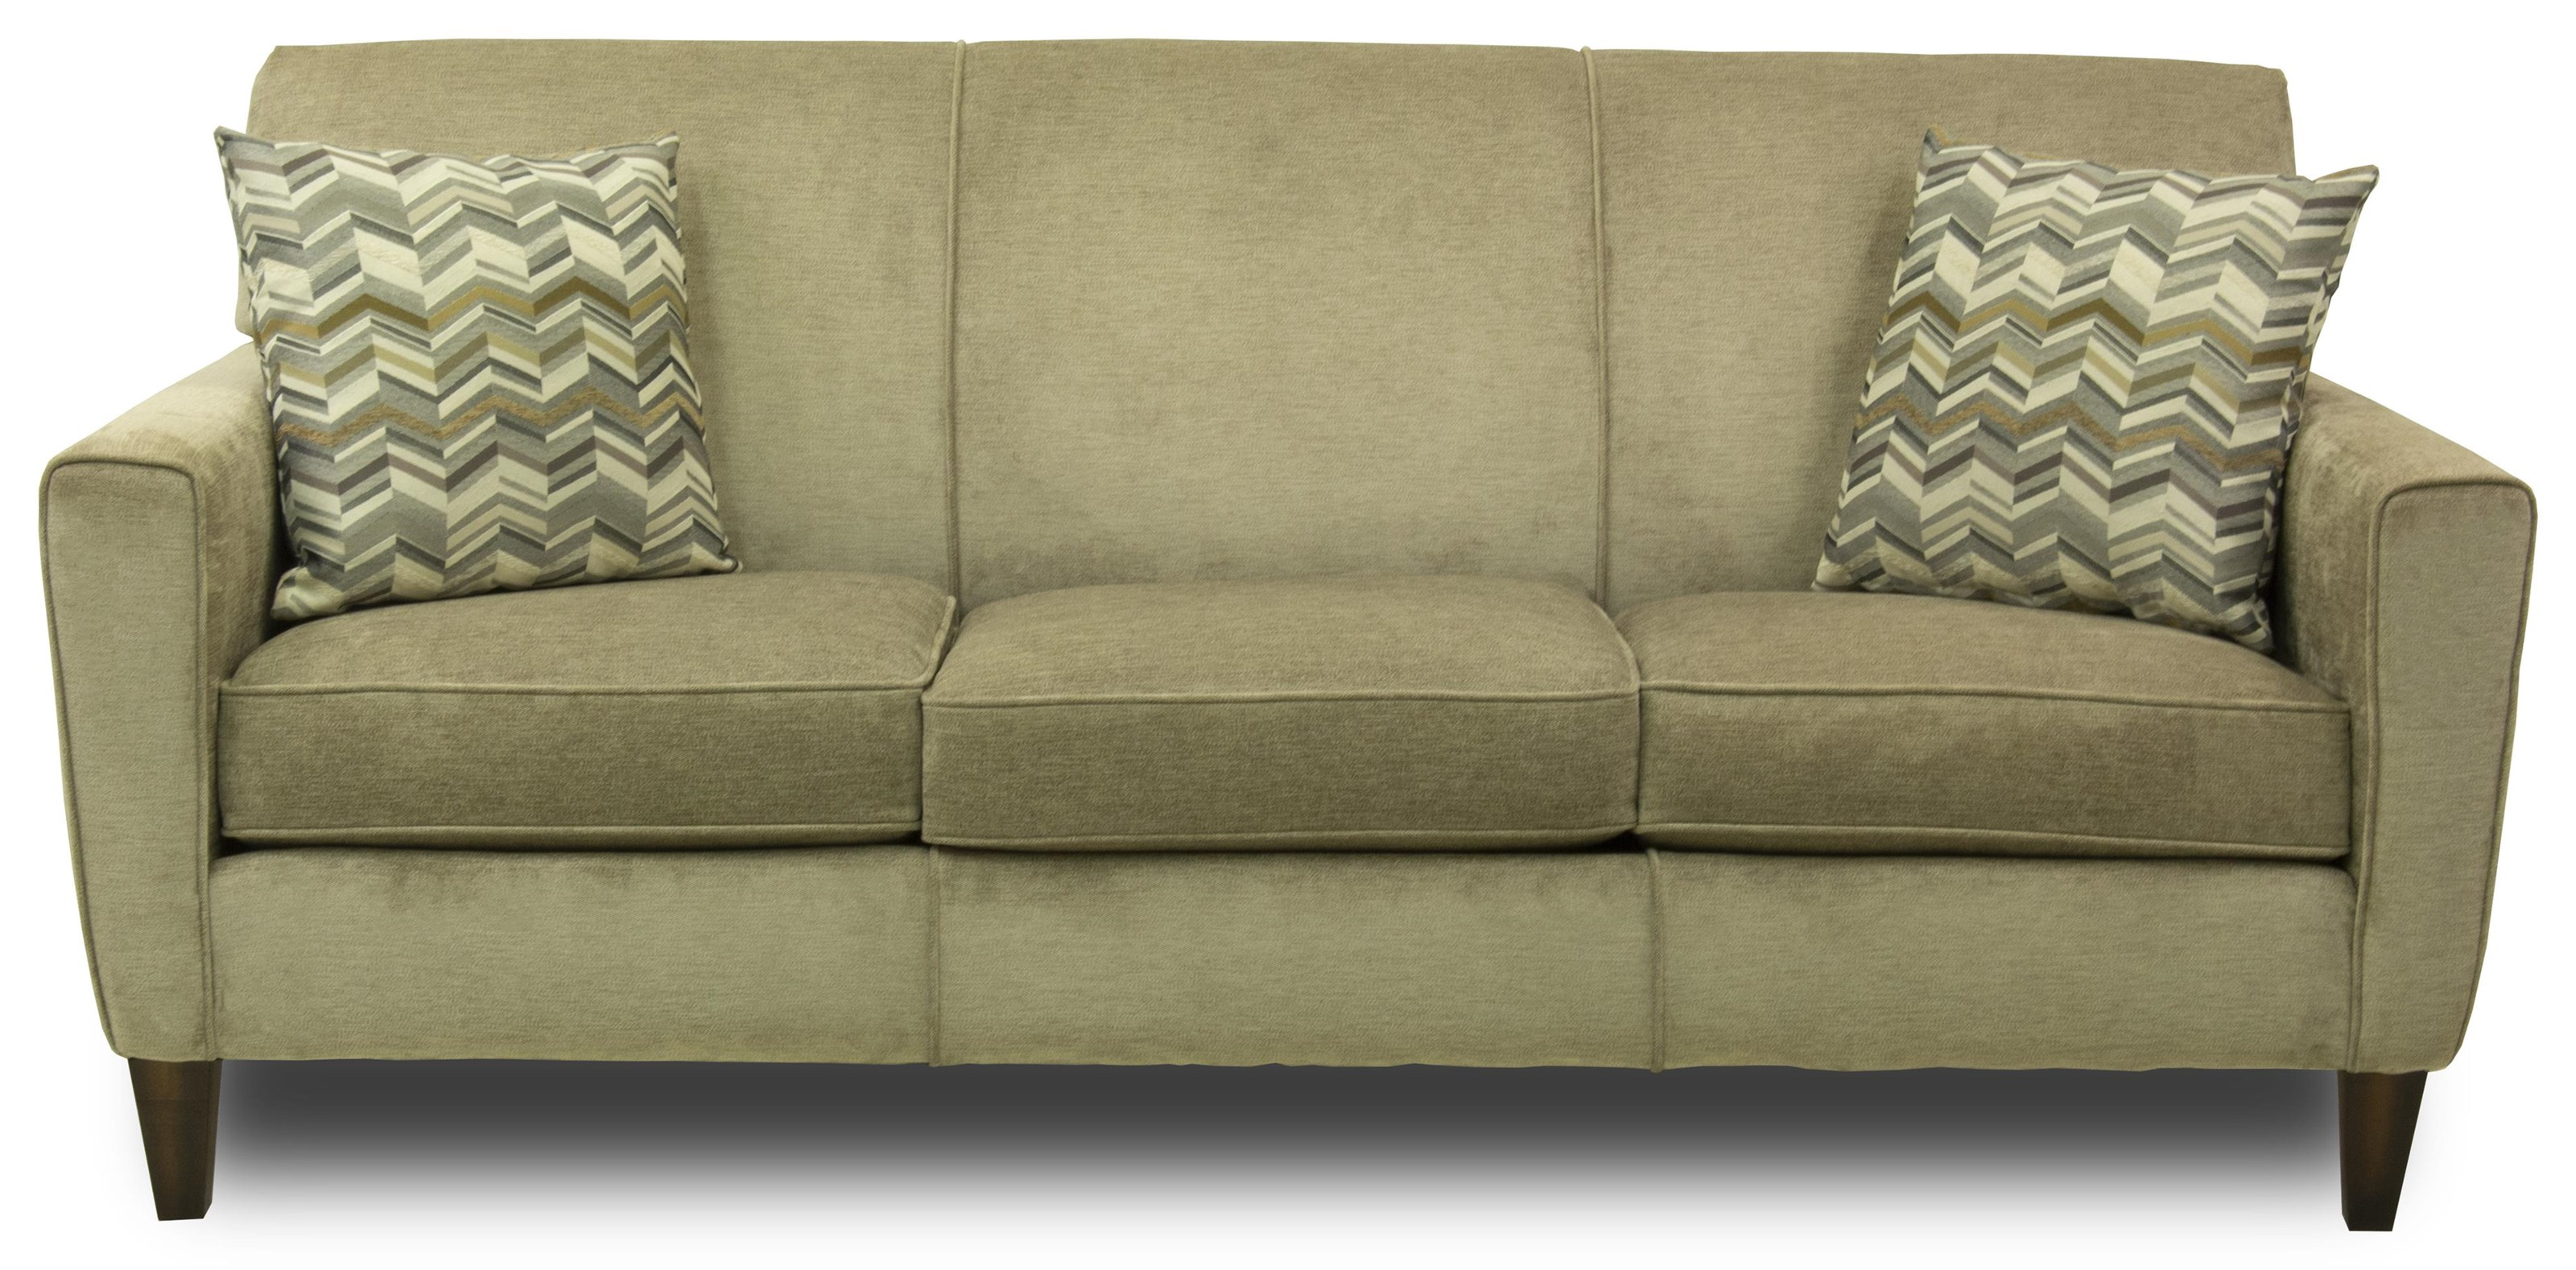 Flexsteel Digby Upholstered Sofa Ruby